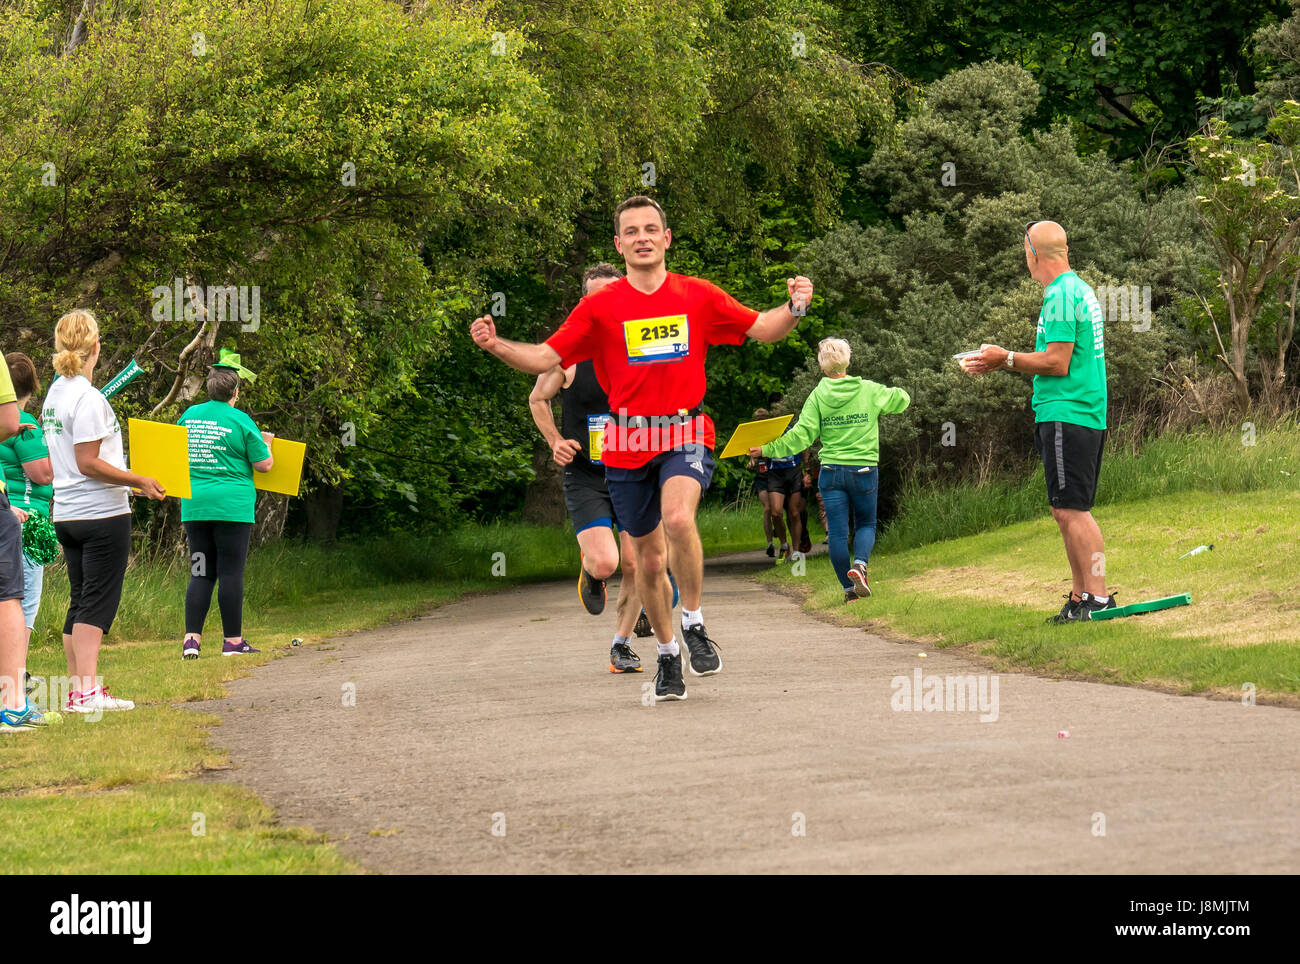 Runners in the Edinburgh Marathon Festival 2017 in Gosford Estate, East Lothian, Scotland, UK at Mile 18, with Male - Stock Image